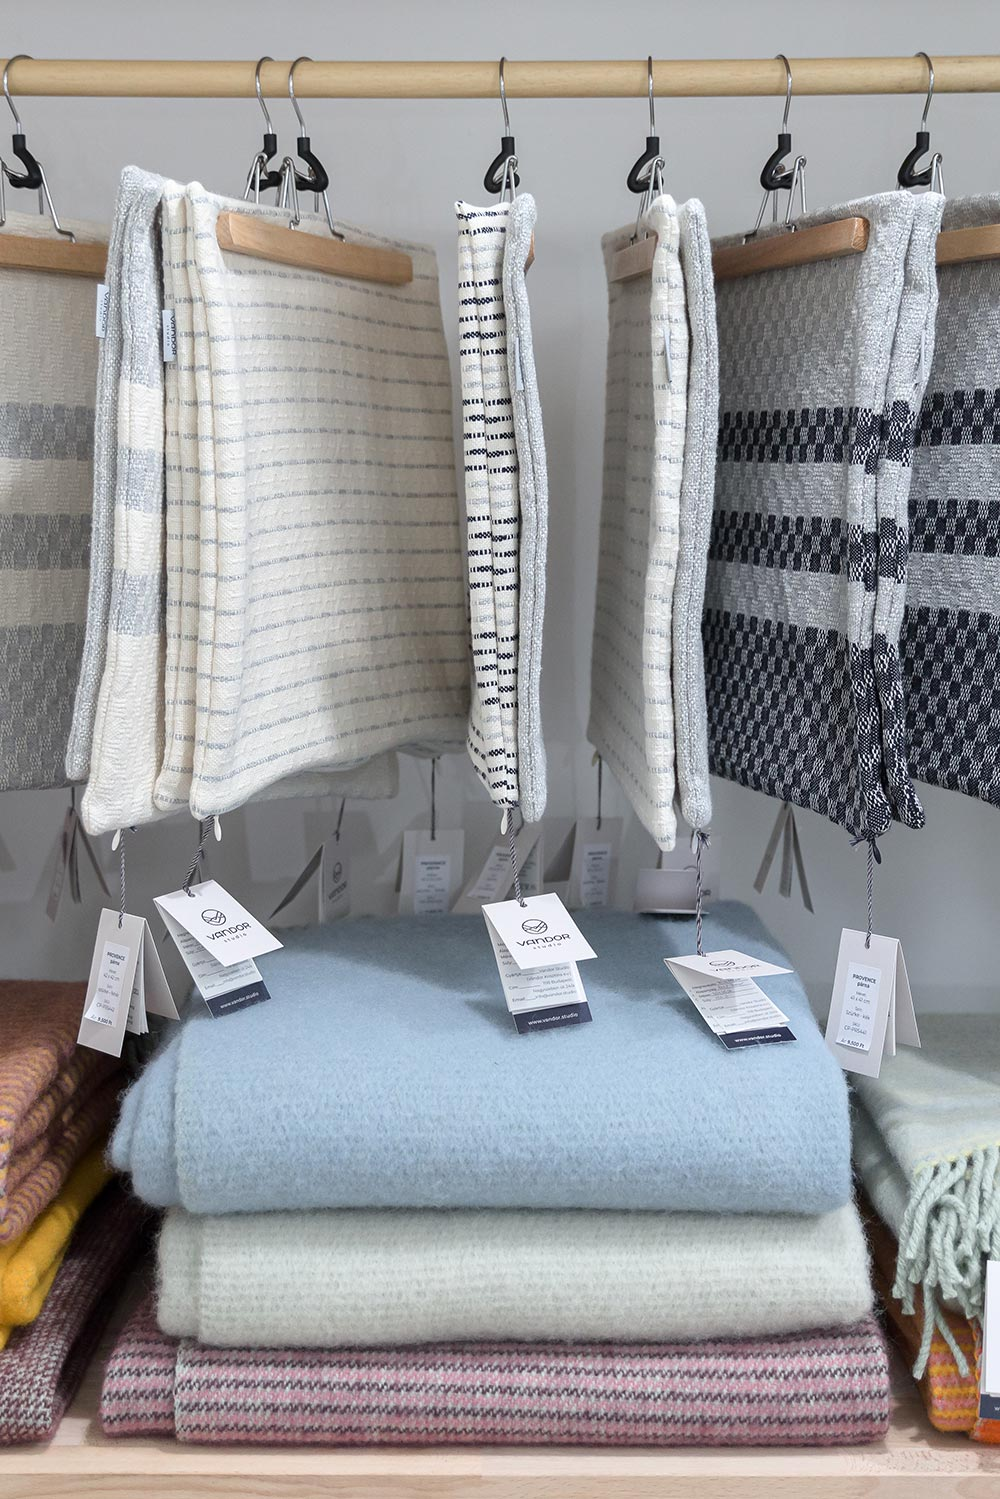 hanging cushions and folded blankets on a shelf at the studio